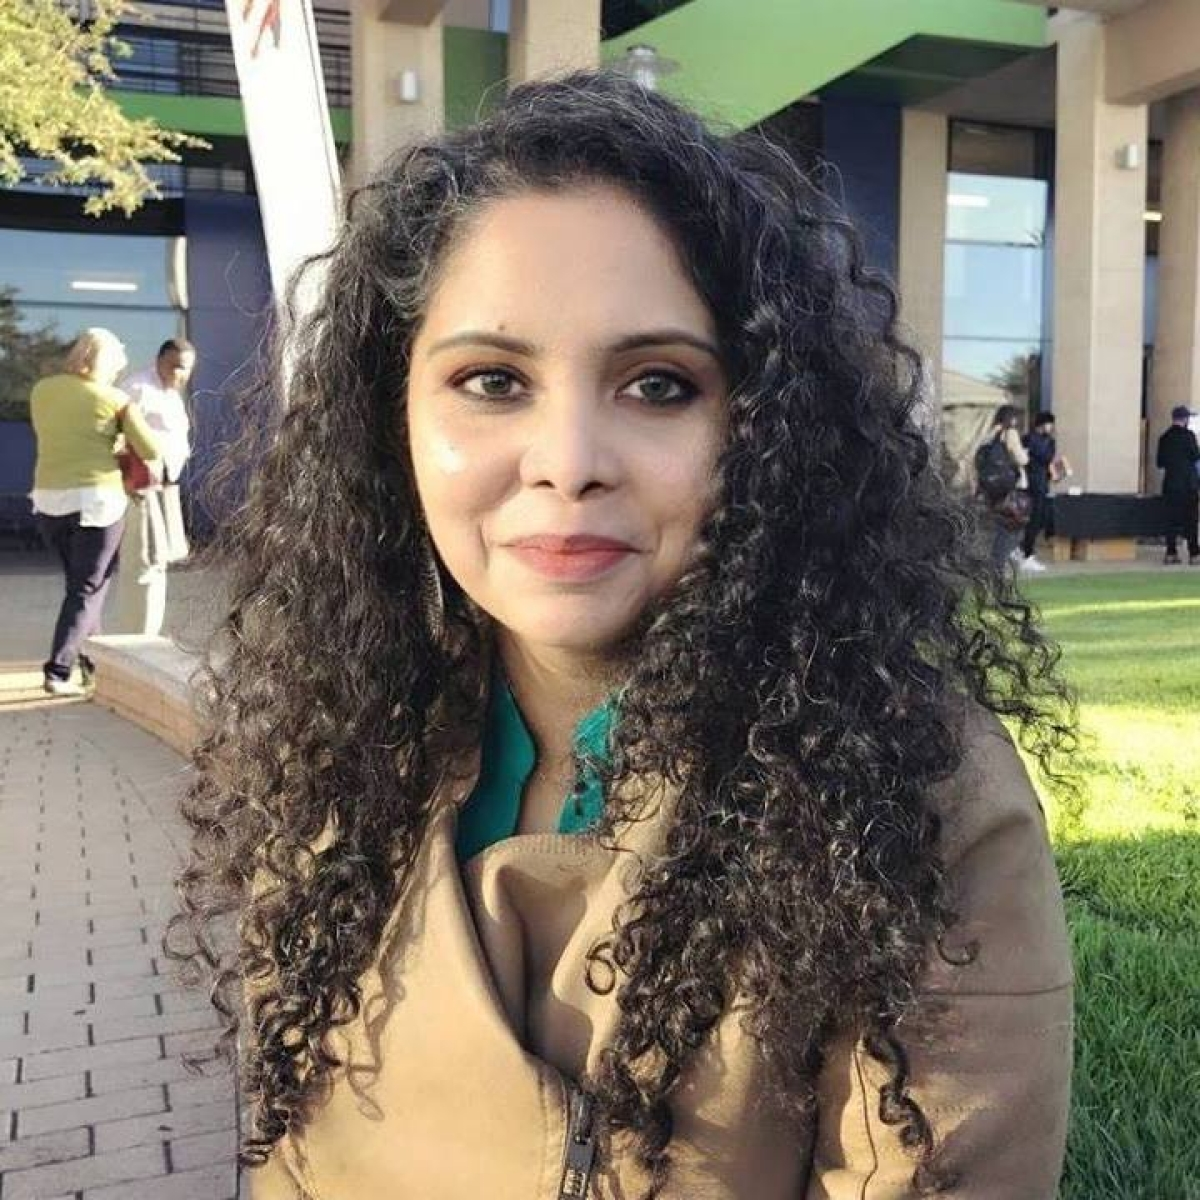 Rana Ayyub is an investigative journalist and author.